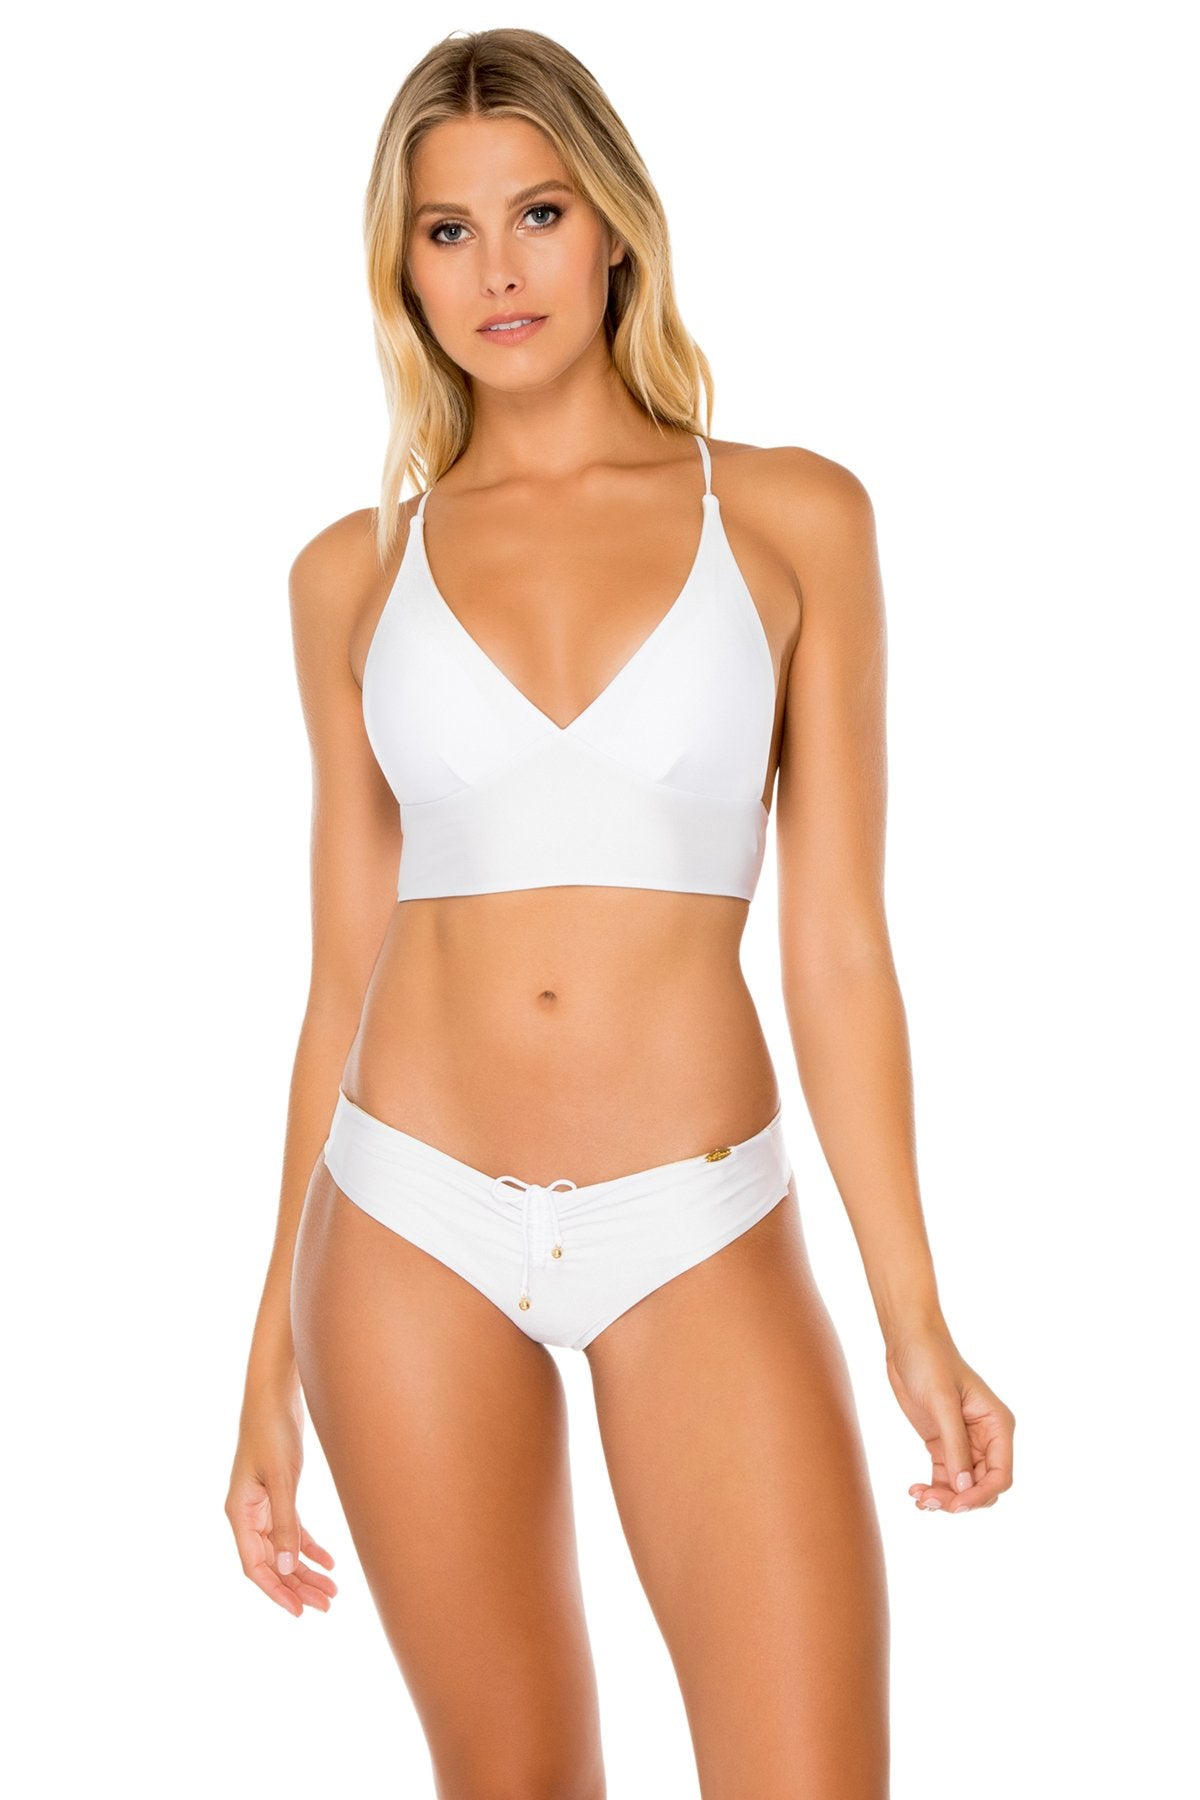 COSITA BUENA - Cross Back Bustier Top & Drawstring Ruched Brazilian Bottom • White